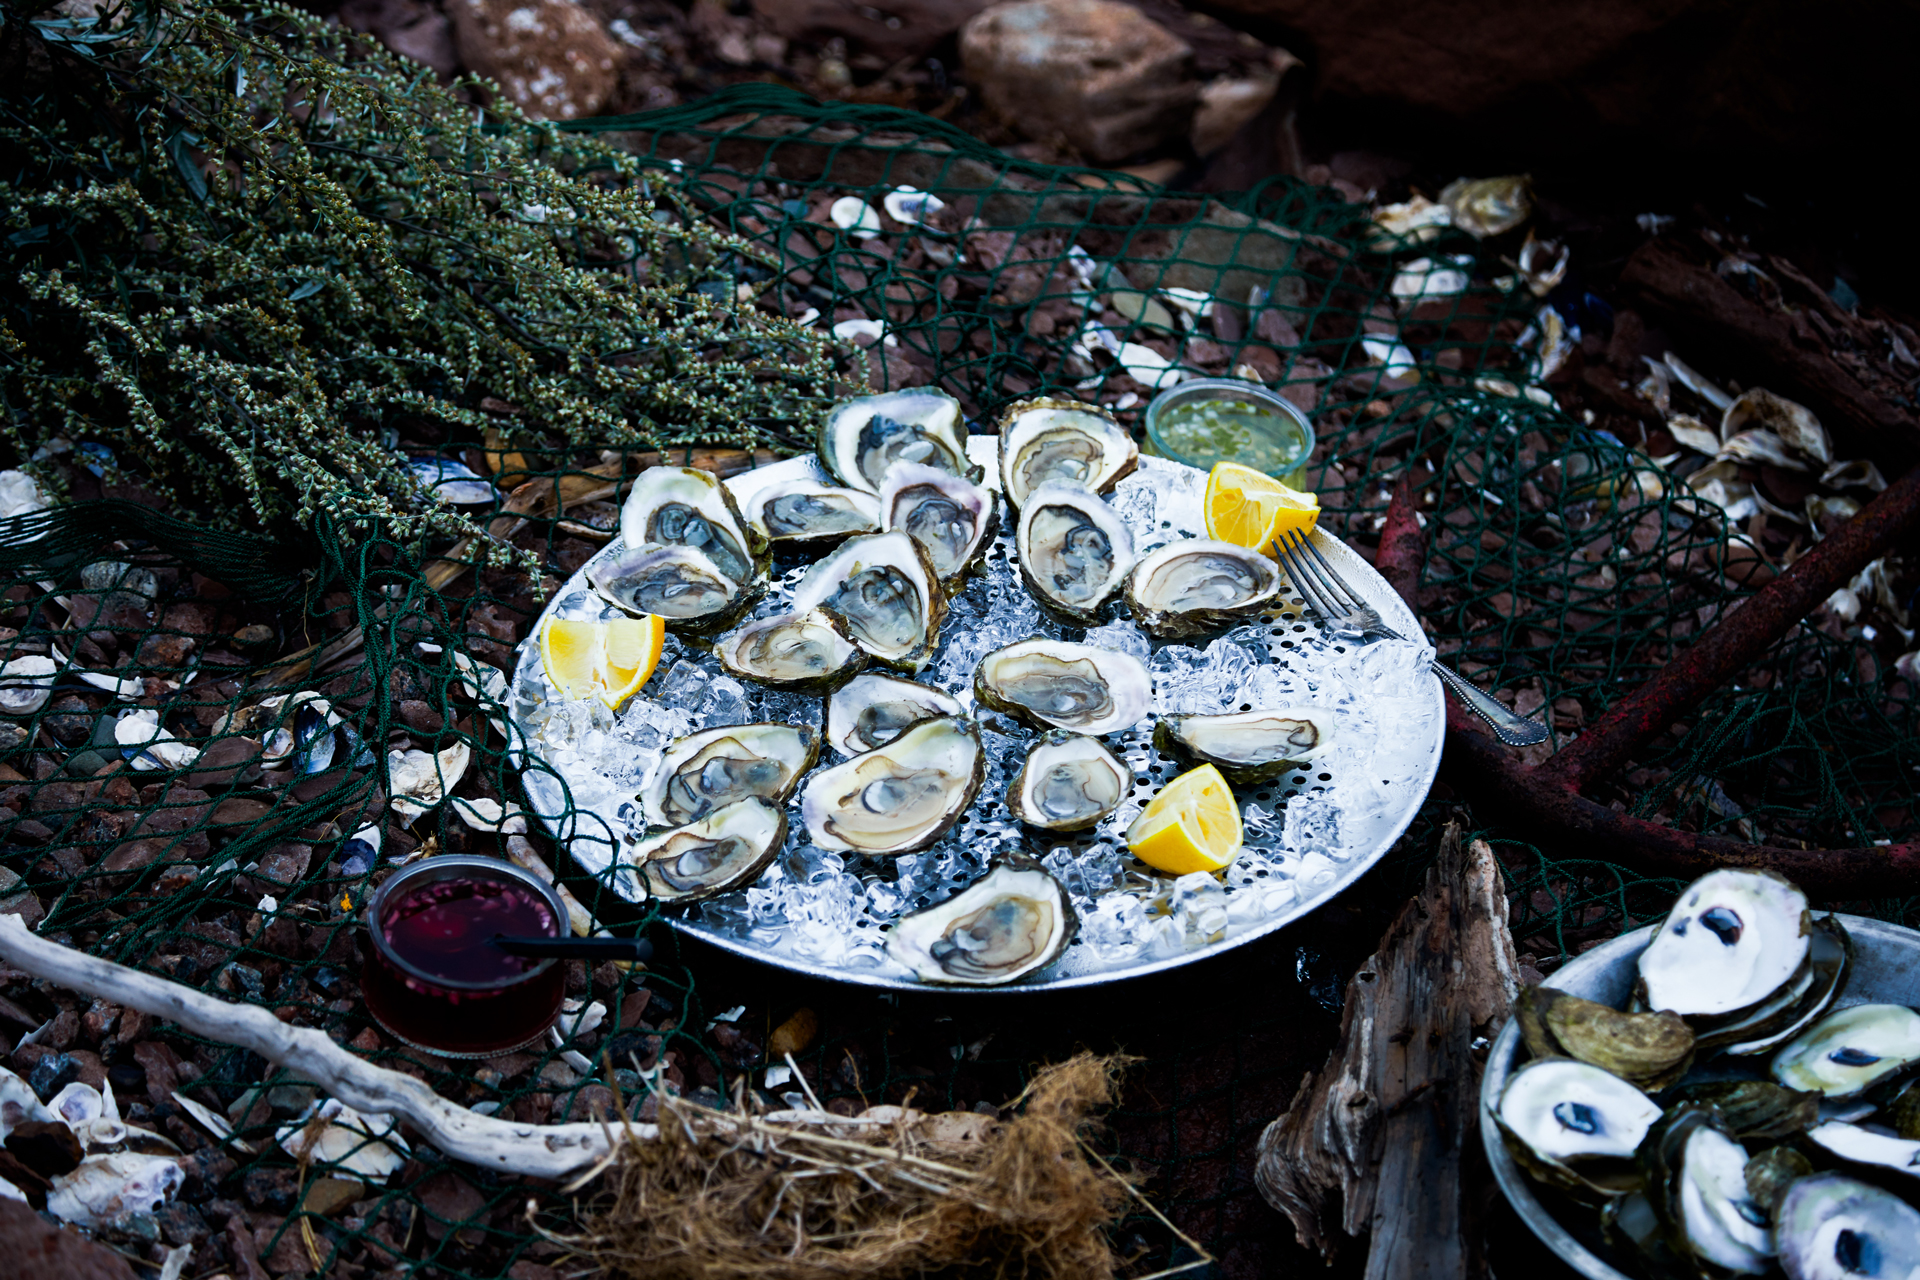 Plate of wild oysters on rocks